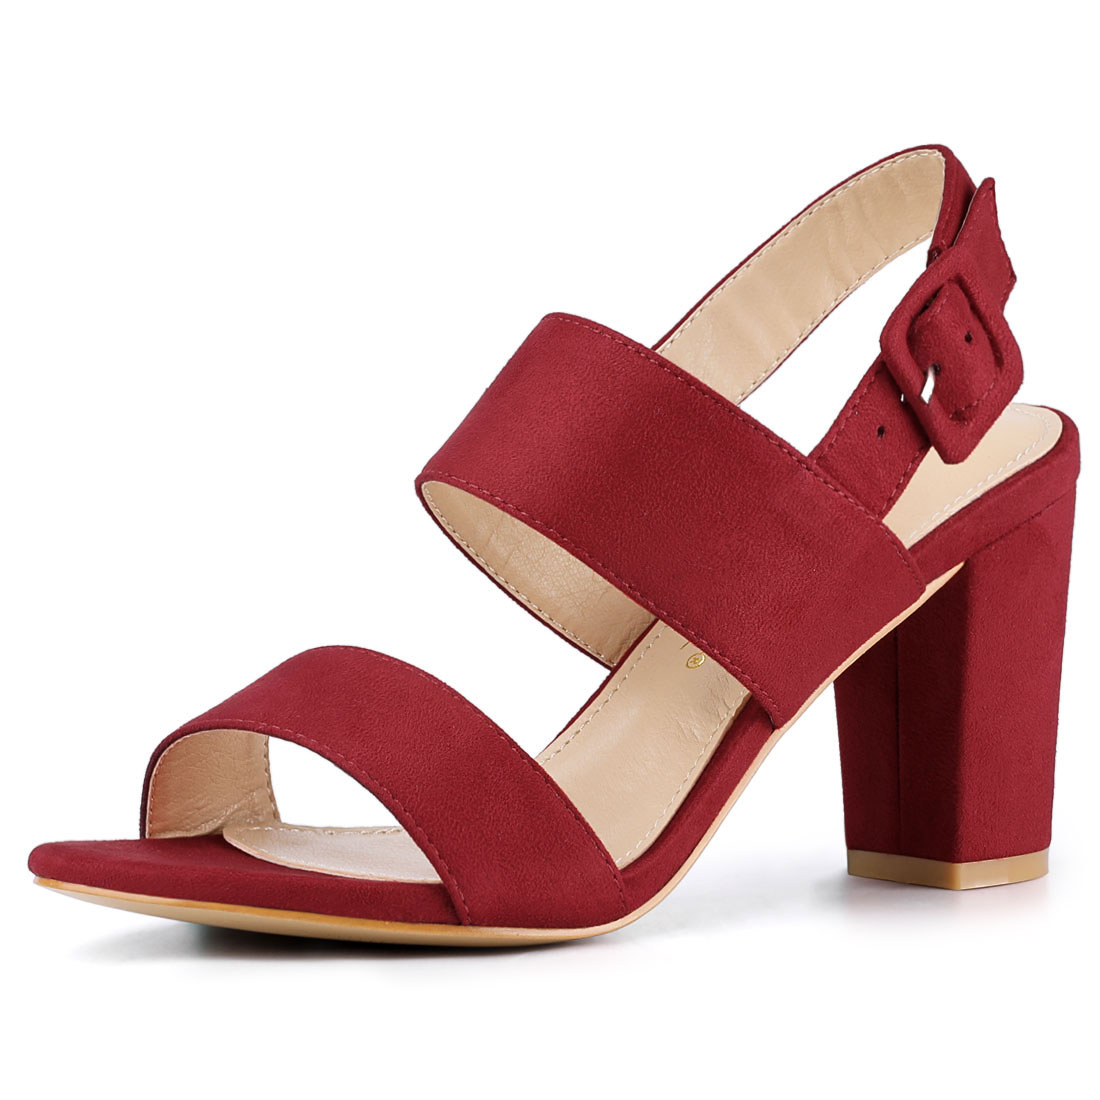 Women Open Toe Slingback High Block Heel Sandals Red US 10